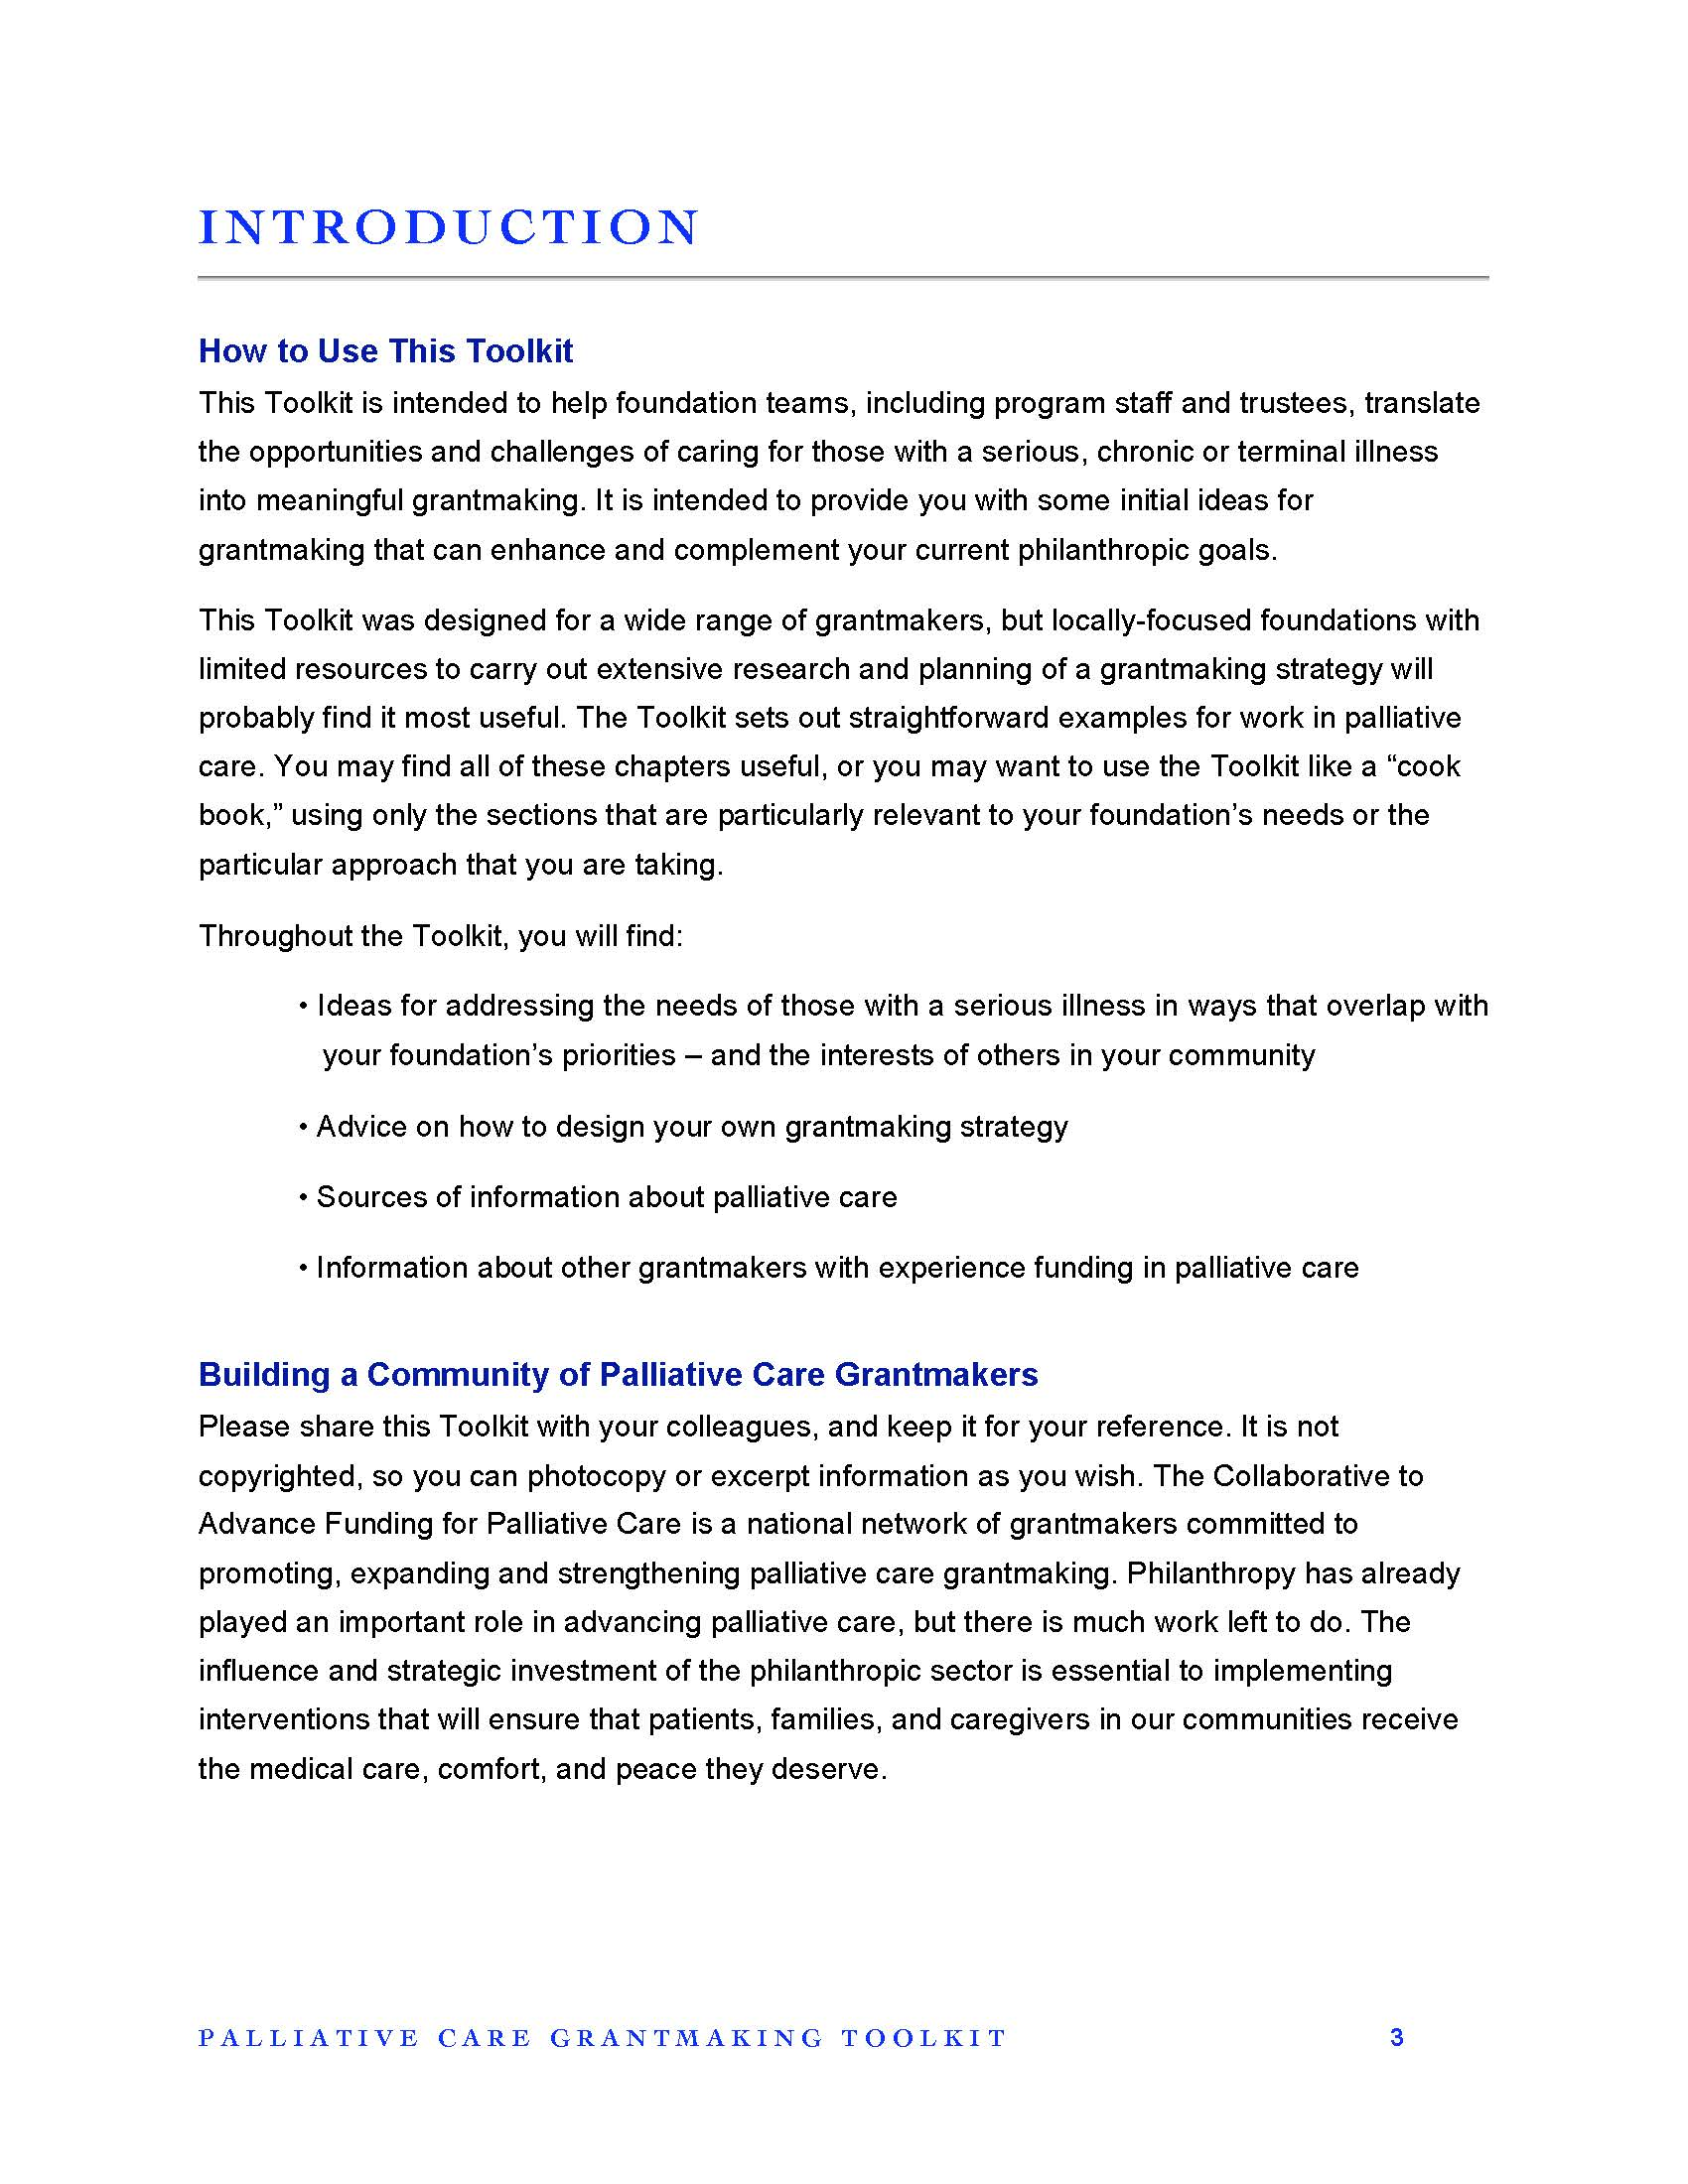 Palliative Care Grantmaking Toolkit_Page_04.jpg